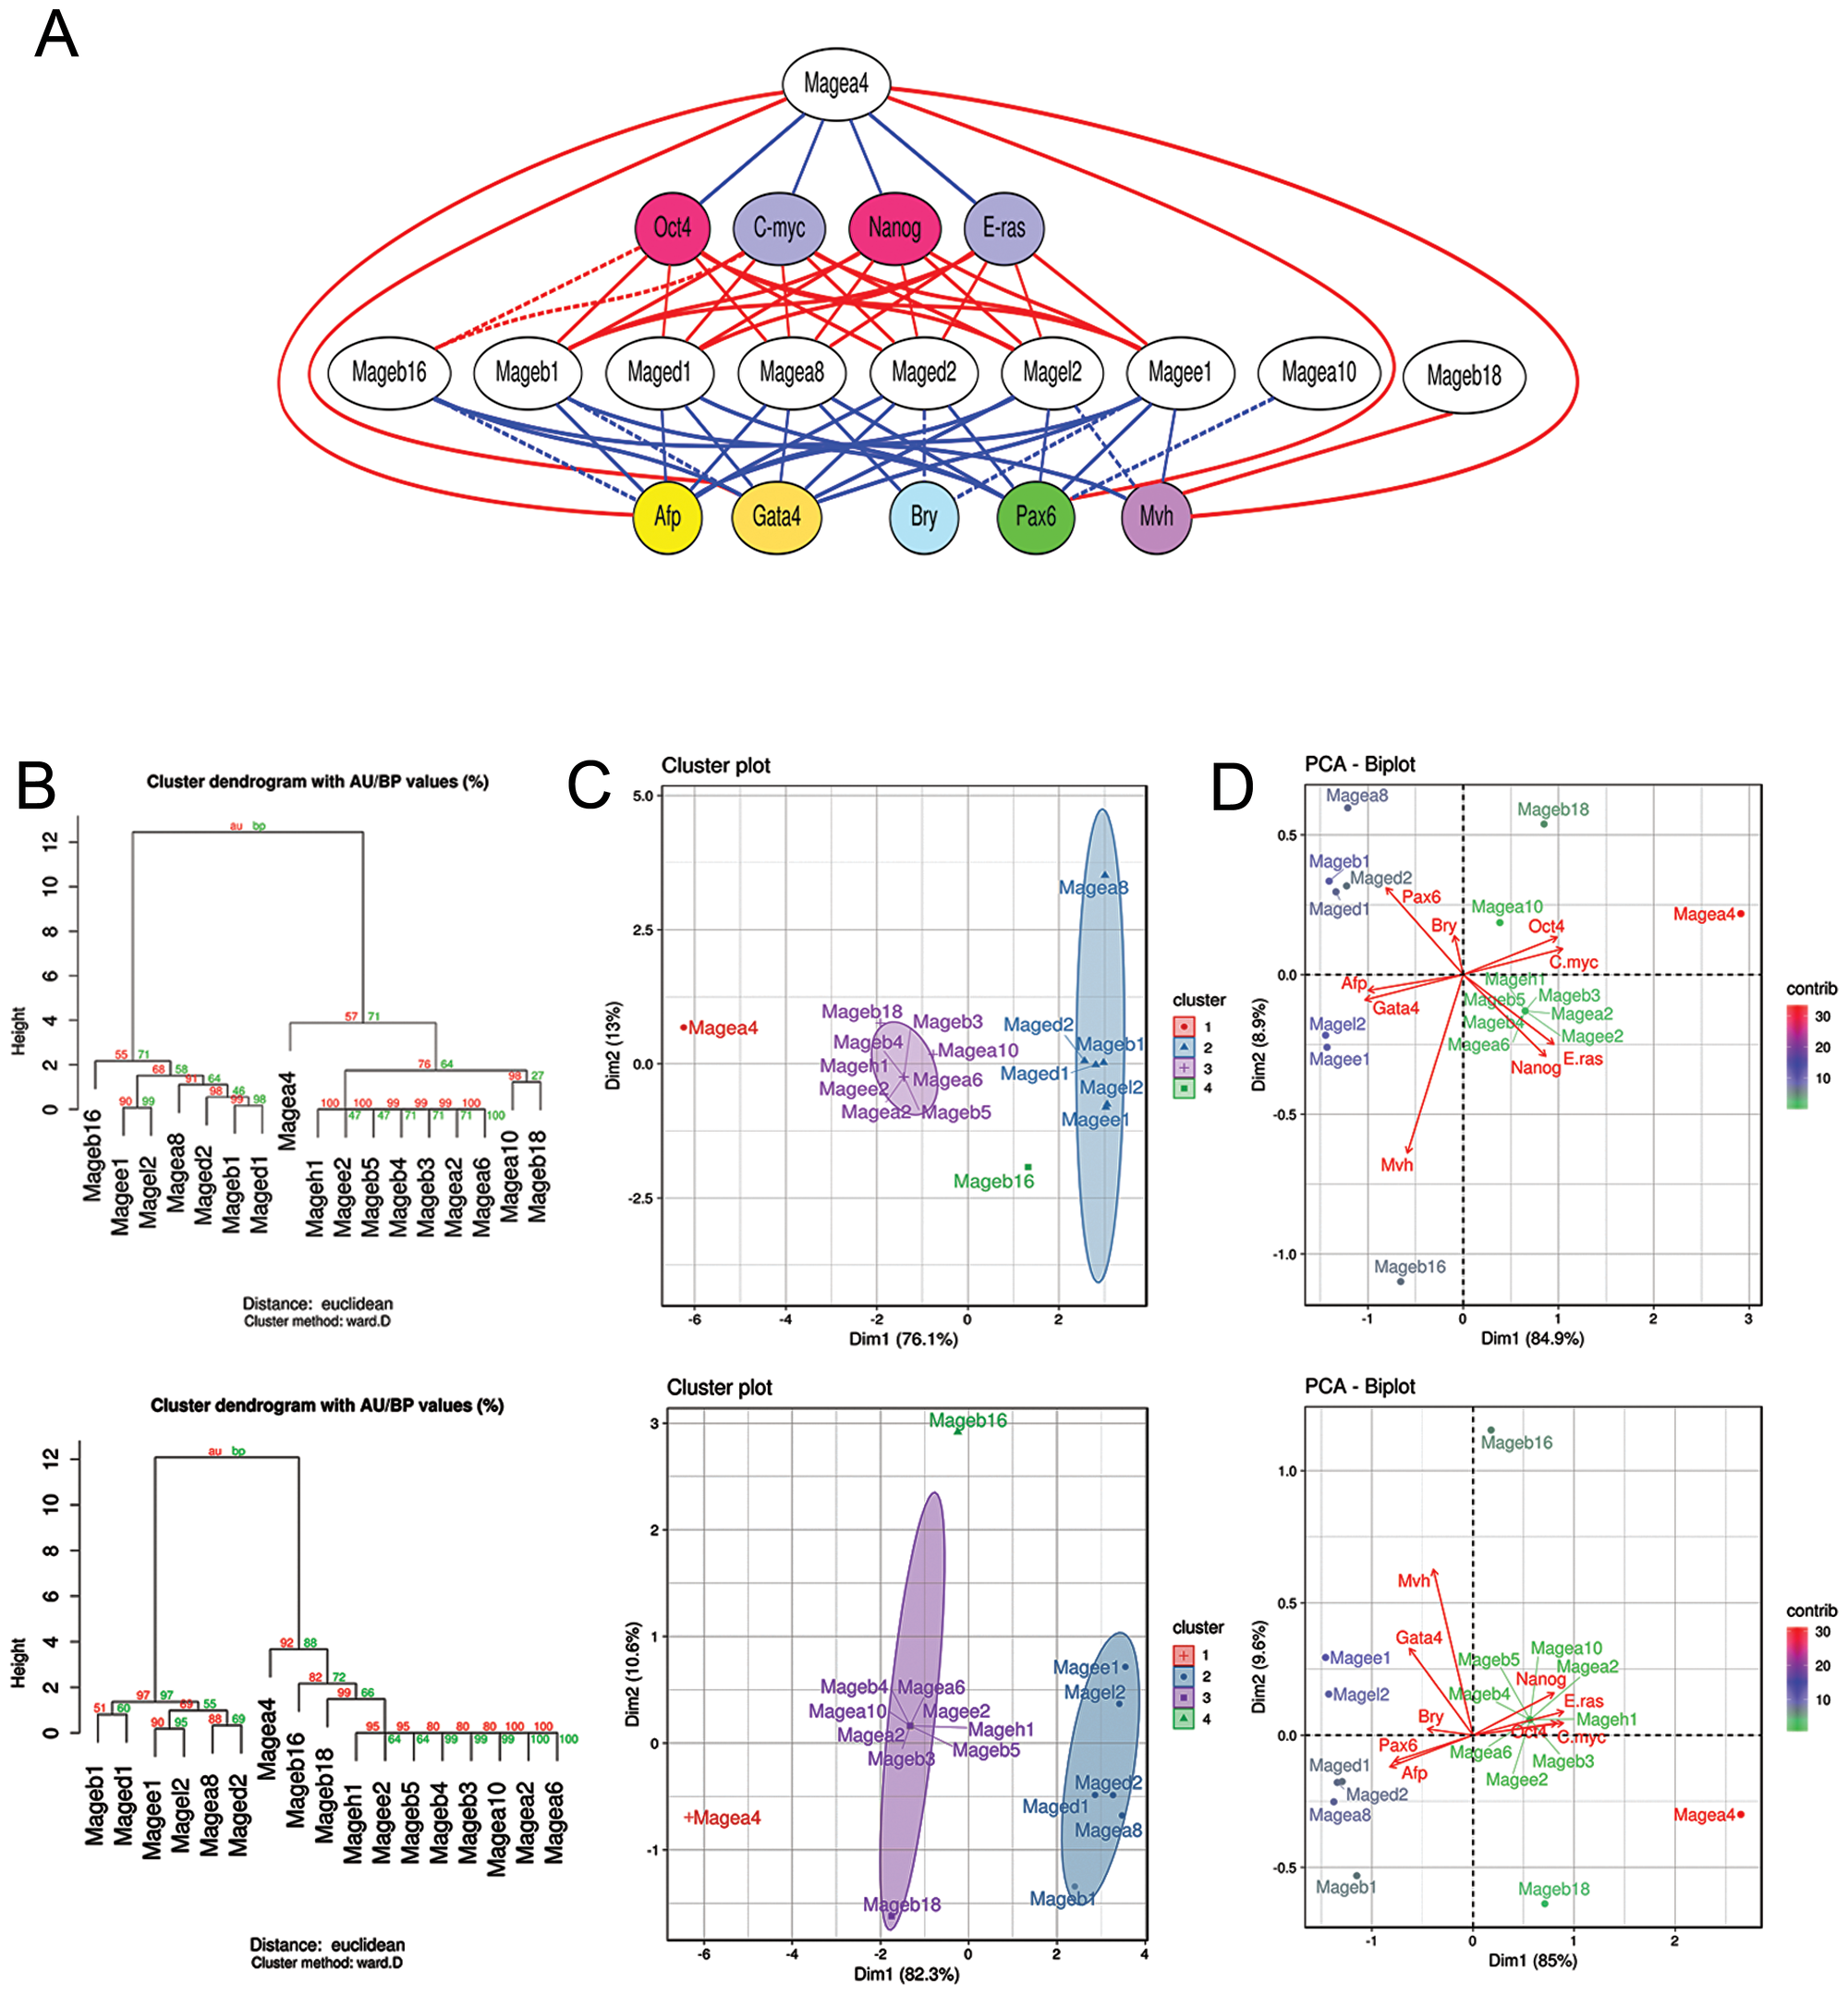 Mage family contributions in the self-renewal and differentiation of ESCs, EGCs, ECCs and E7.5 embryos.